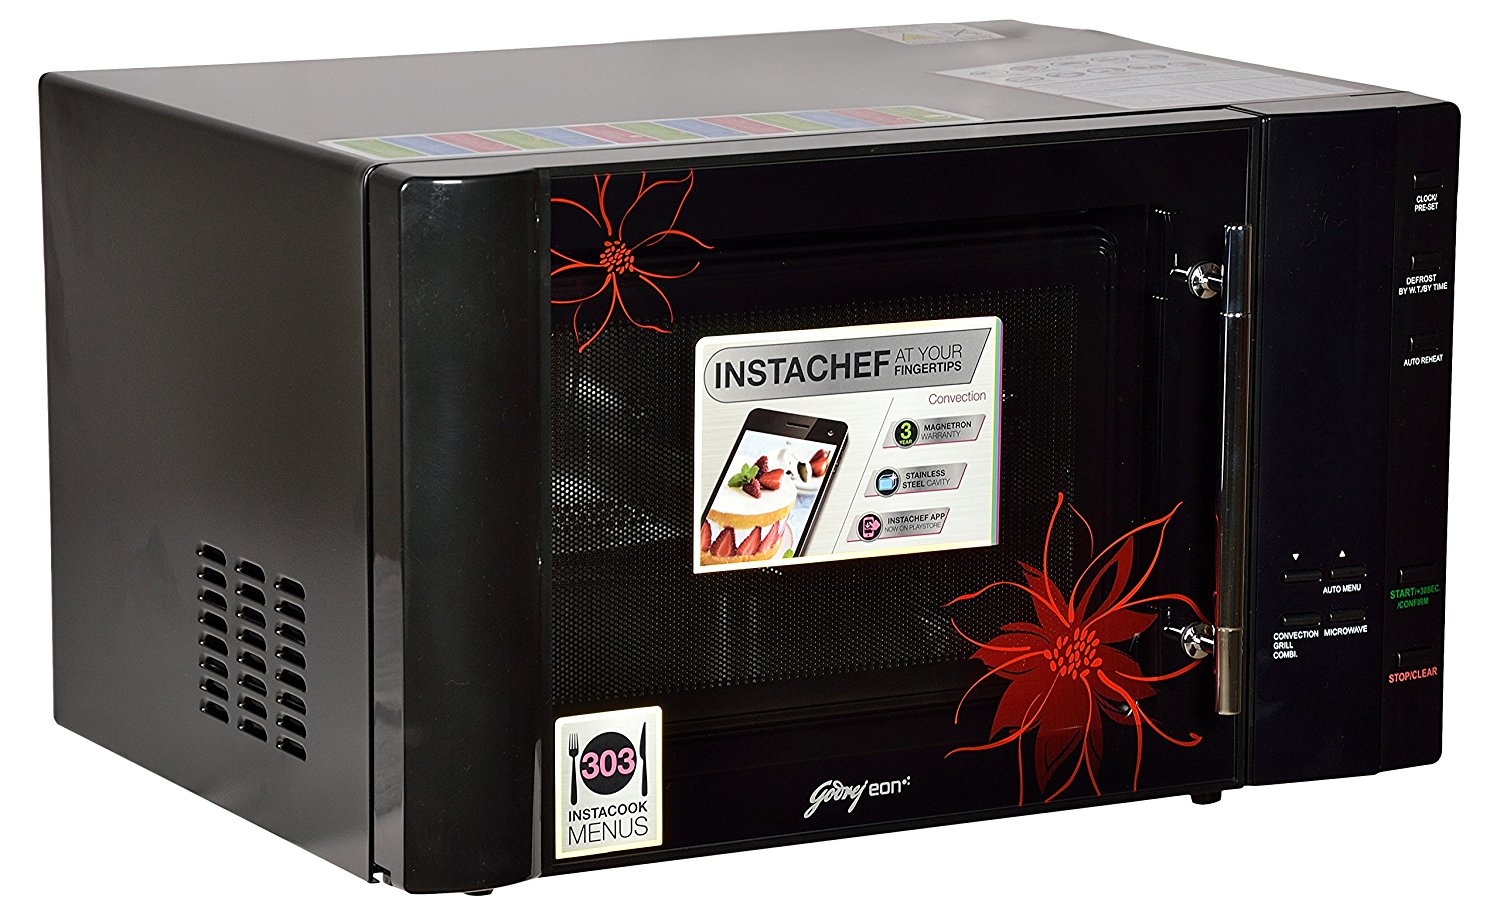 Godrej 30 liters convection microwave oven